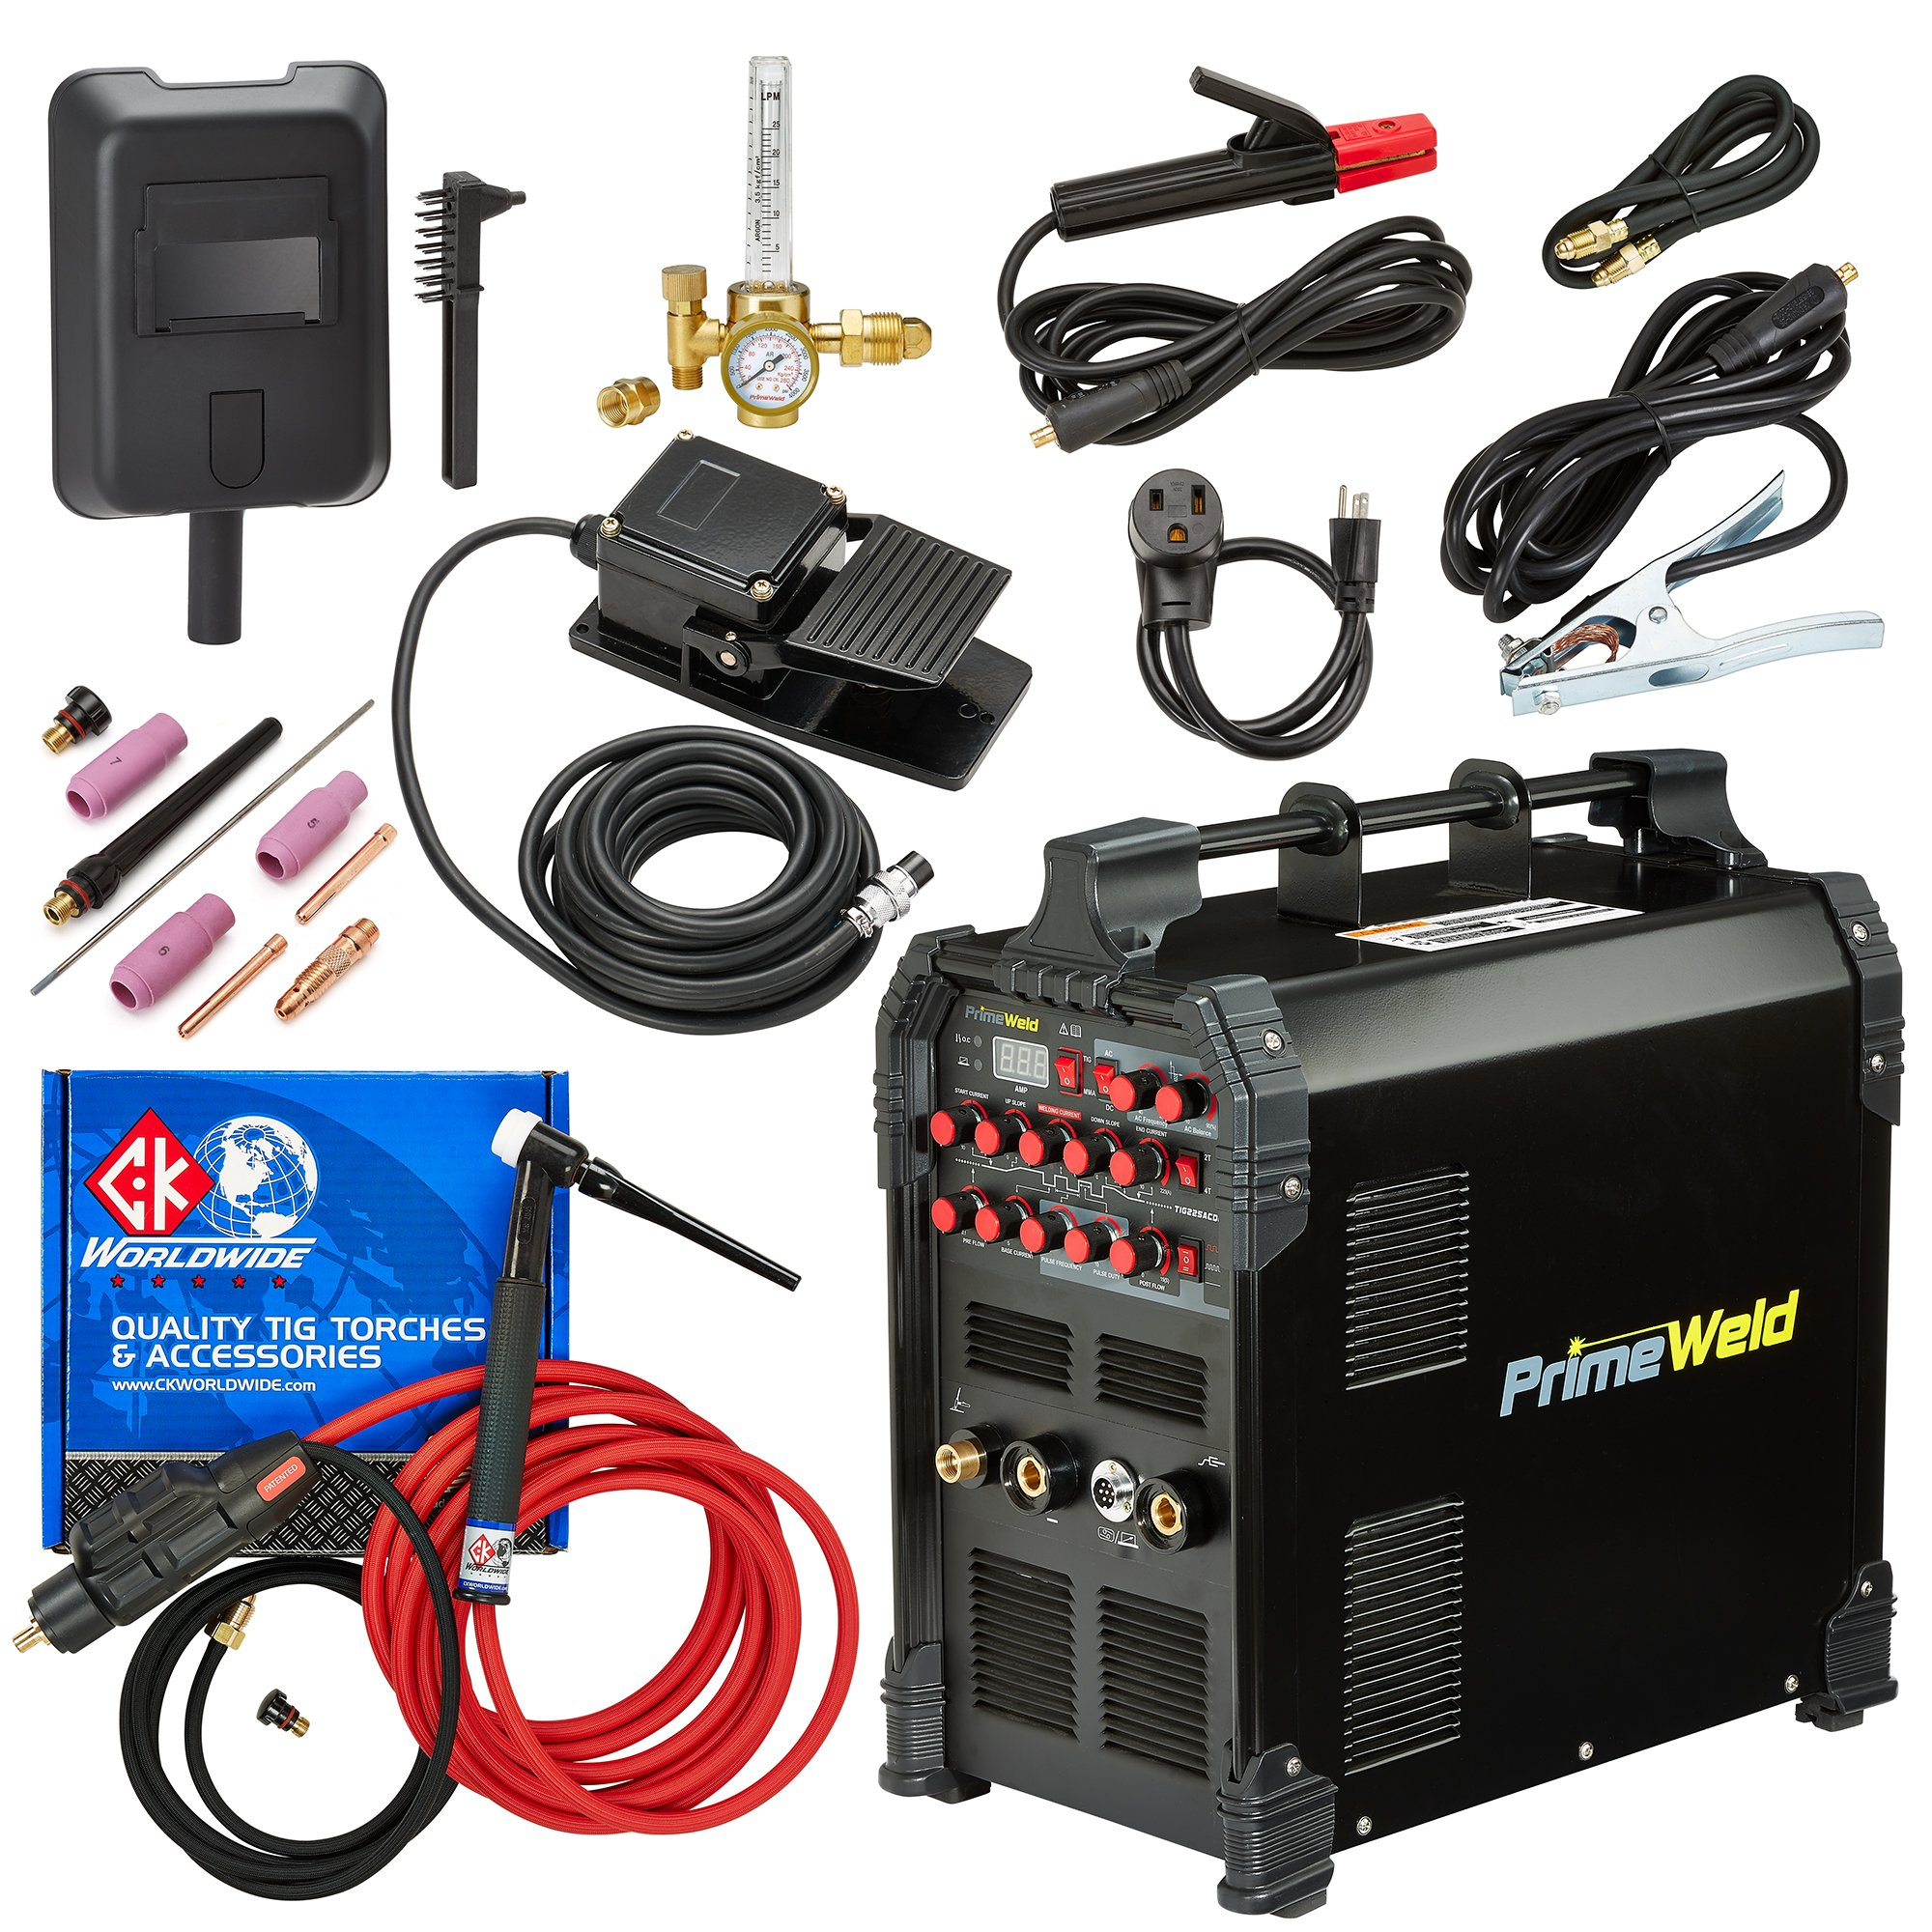 PRIMEWELD TIG225X 225 Amp IGBT AC DC Tig/Stick Welder with Pulse CK17 Flex Torch and Cable 3 Year Warranty by PRIMEWELD (Image #2)